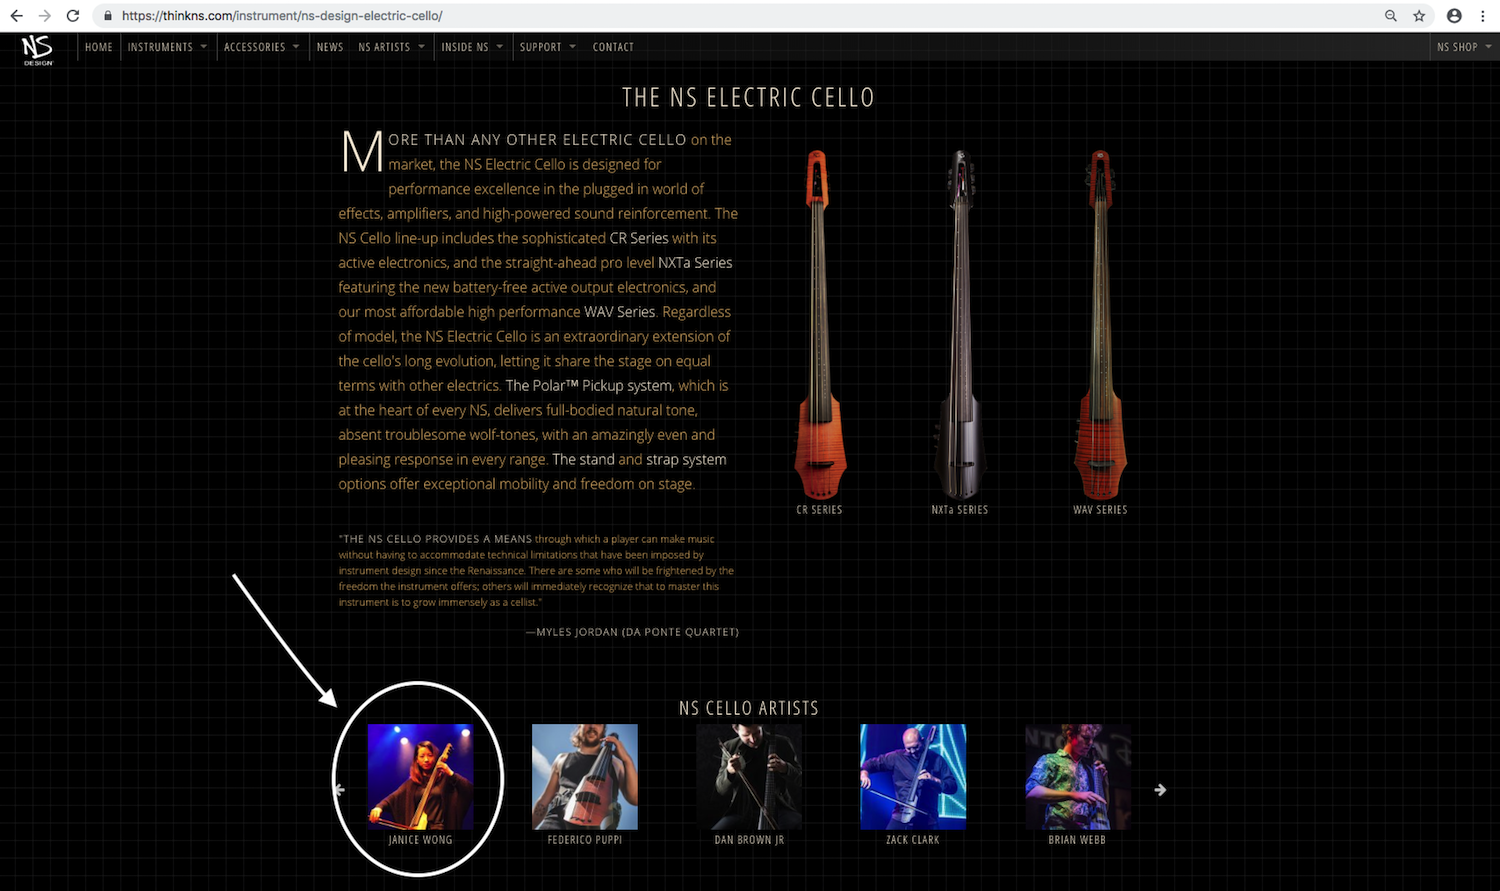 NS-Design-Cello-Artist-The-Wong-Janice-electric-cellist-Amsterdam-music-producer.png